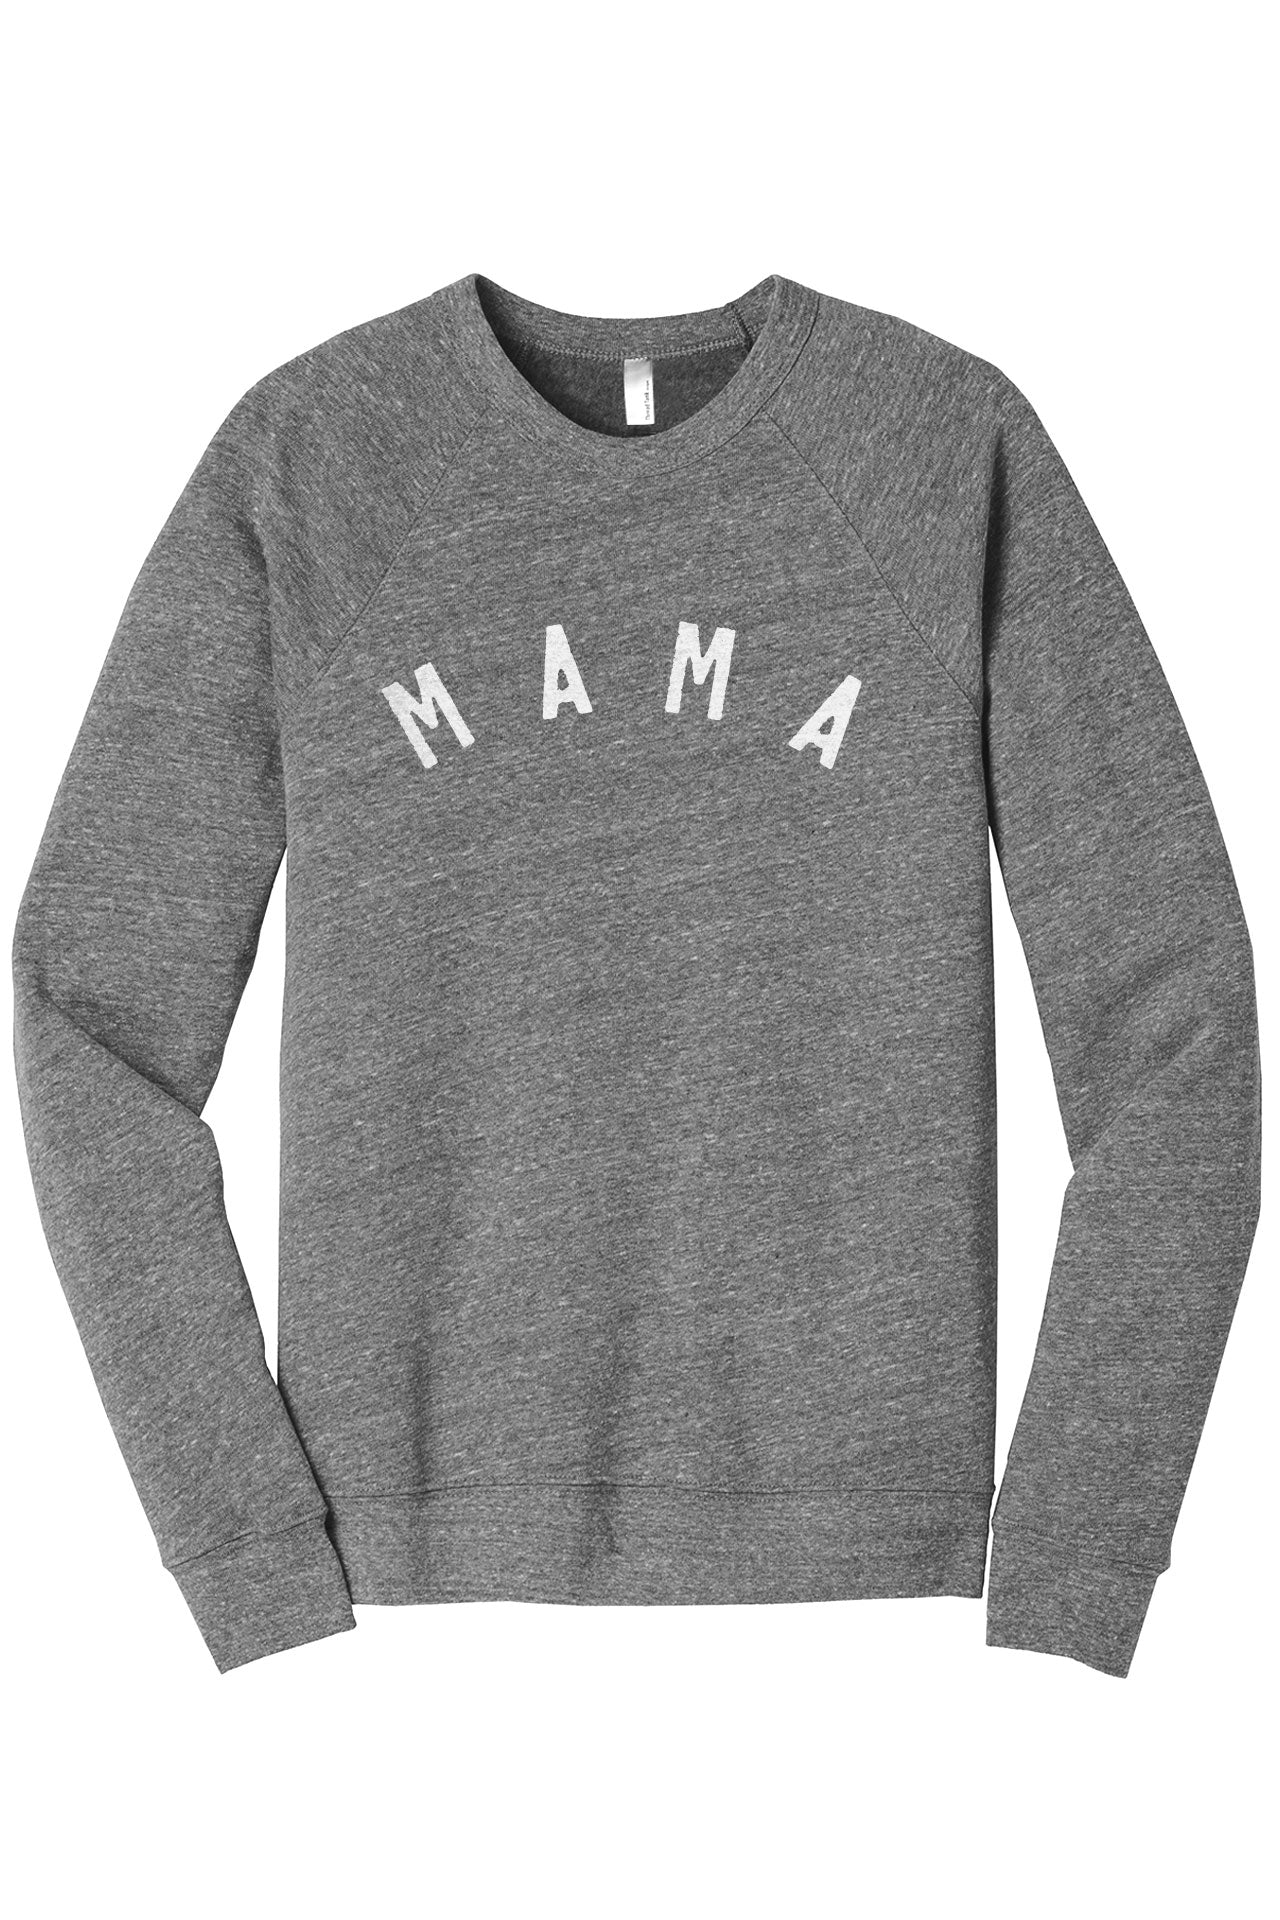 Simply Mama Women's Cozy Fleece Longsleeves Sweater Heather Grey Closeup Details